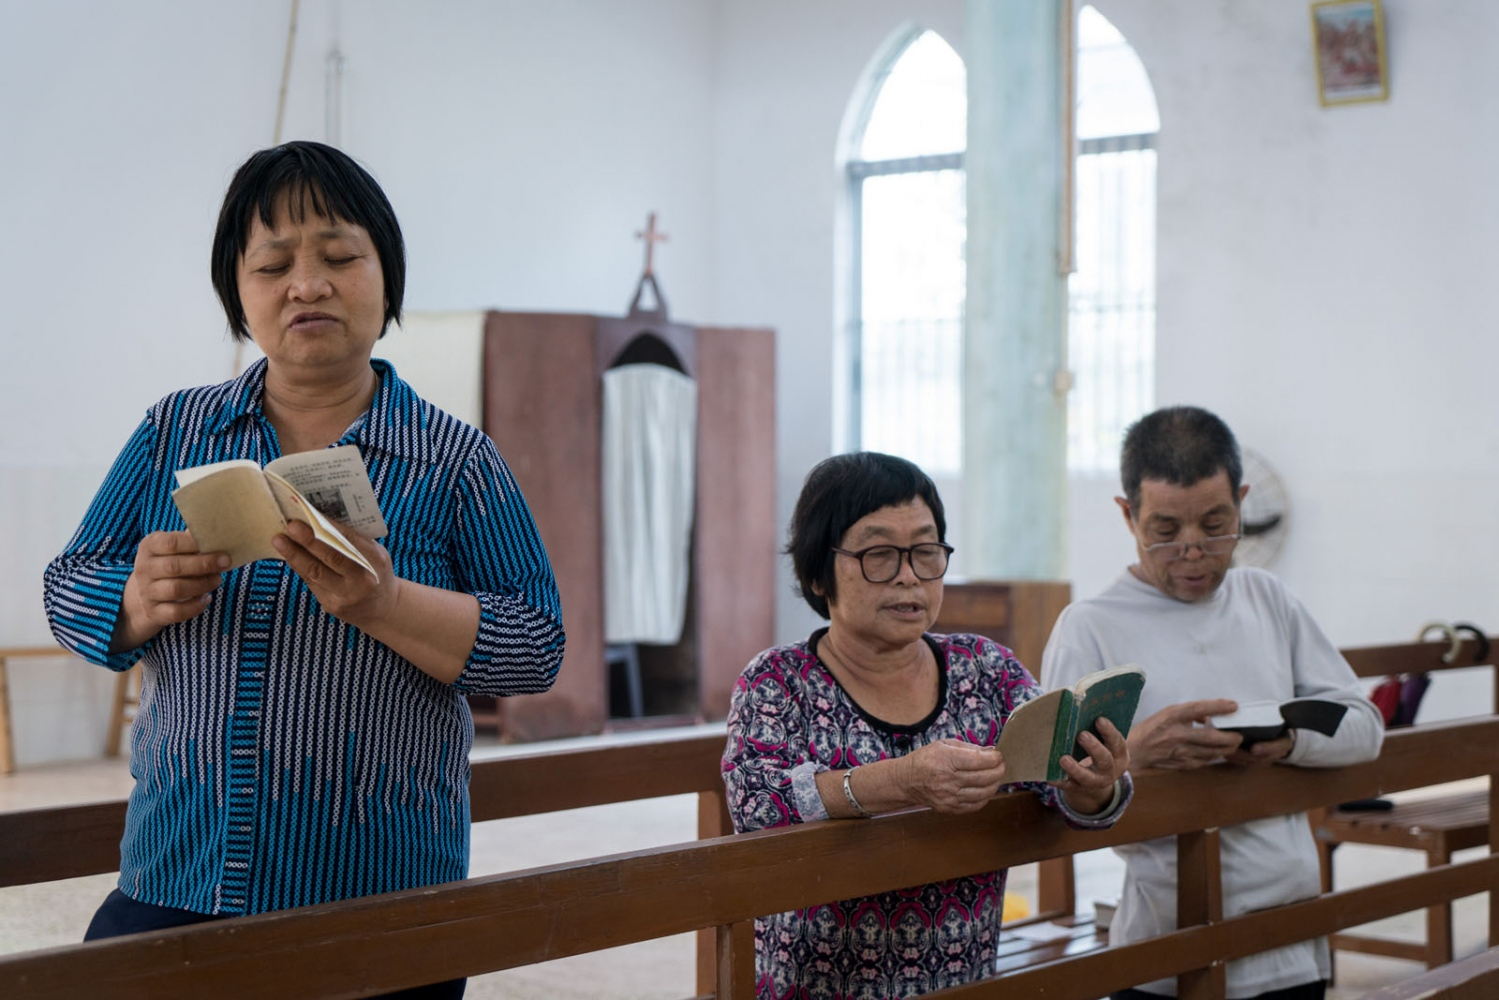 Catholics from nearby villages pray and chant in Luotianba Church in Guangdong province, China on the afternoon of March 4, 2018.